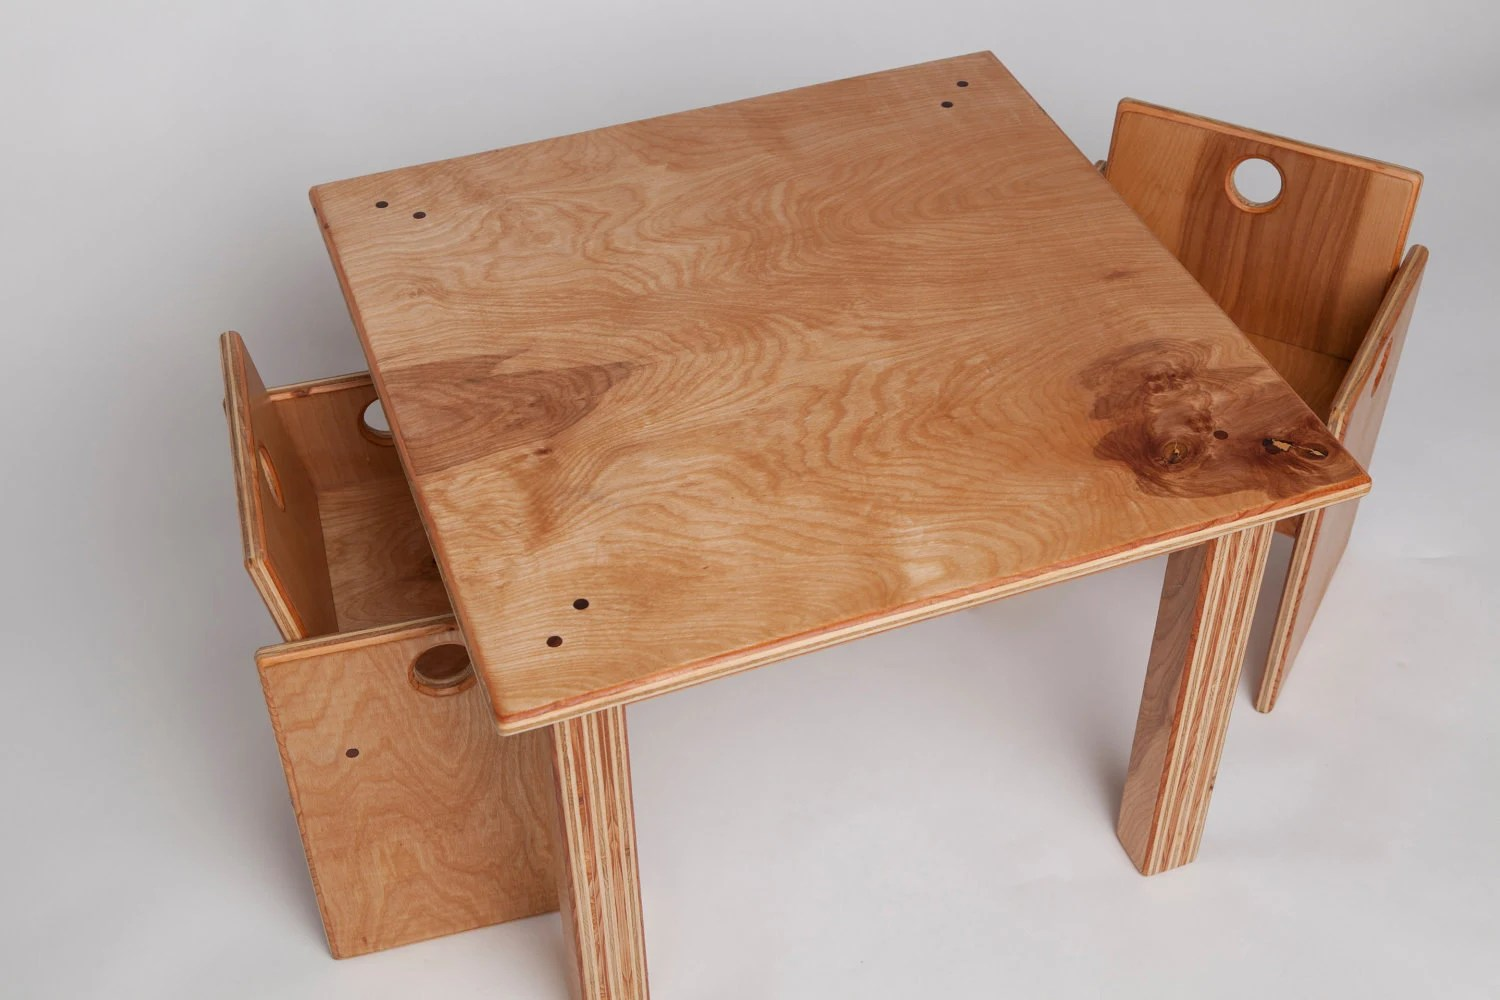 Toddler Chairs Toddler Size Wooden Table And Chairs